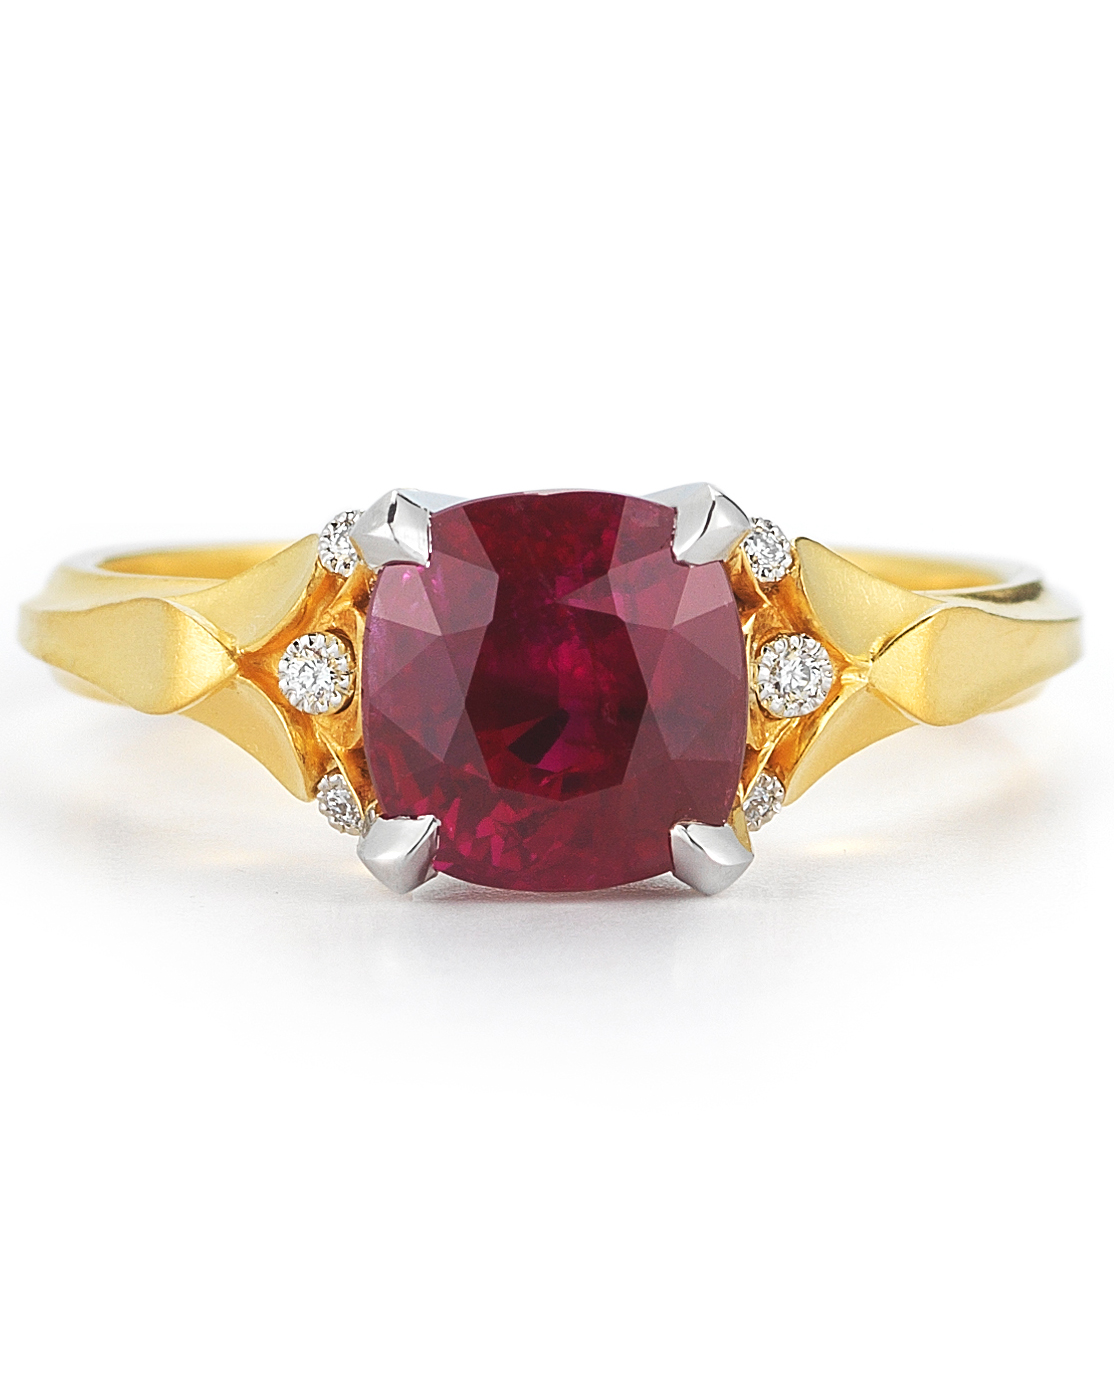 mcteigue-mcclelland-ruby-classic-flora-ring-diamonds-yellow-gold-0816.jpg